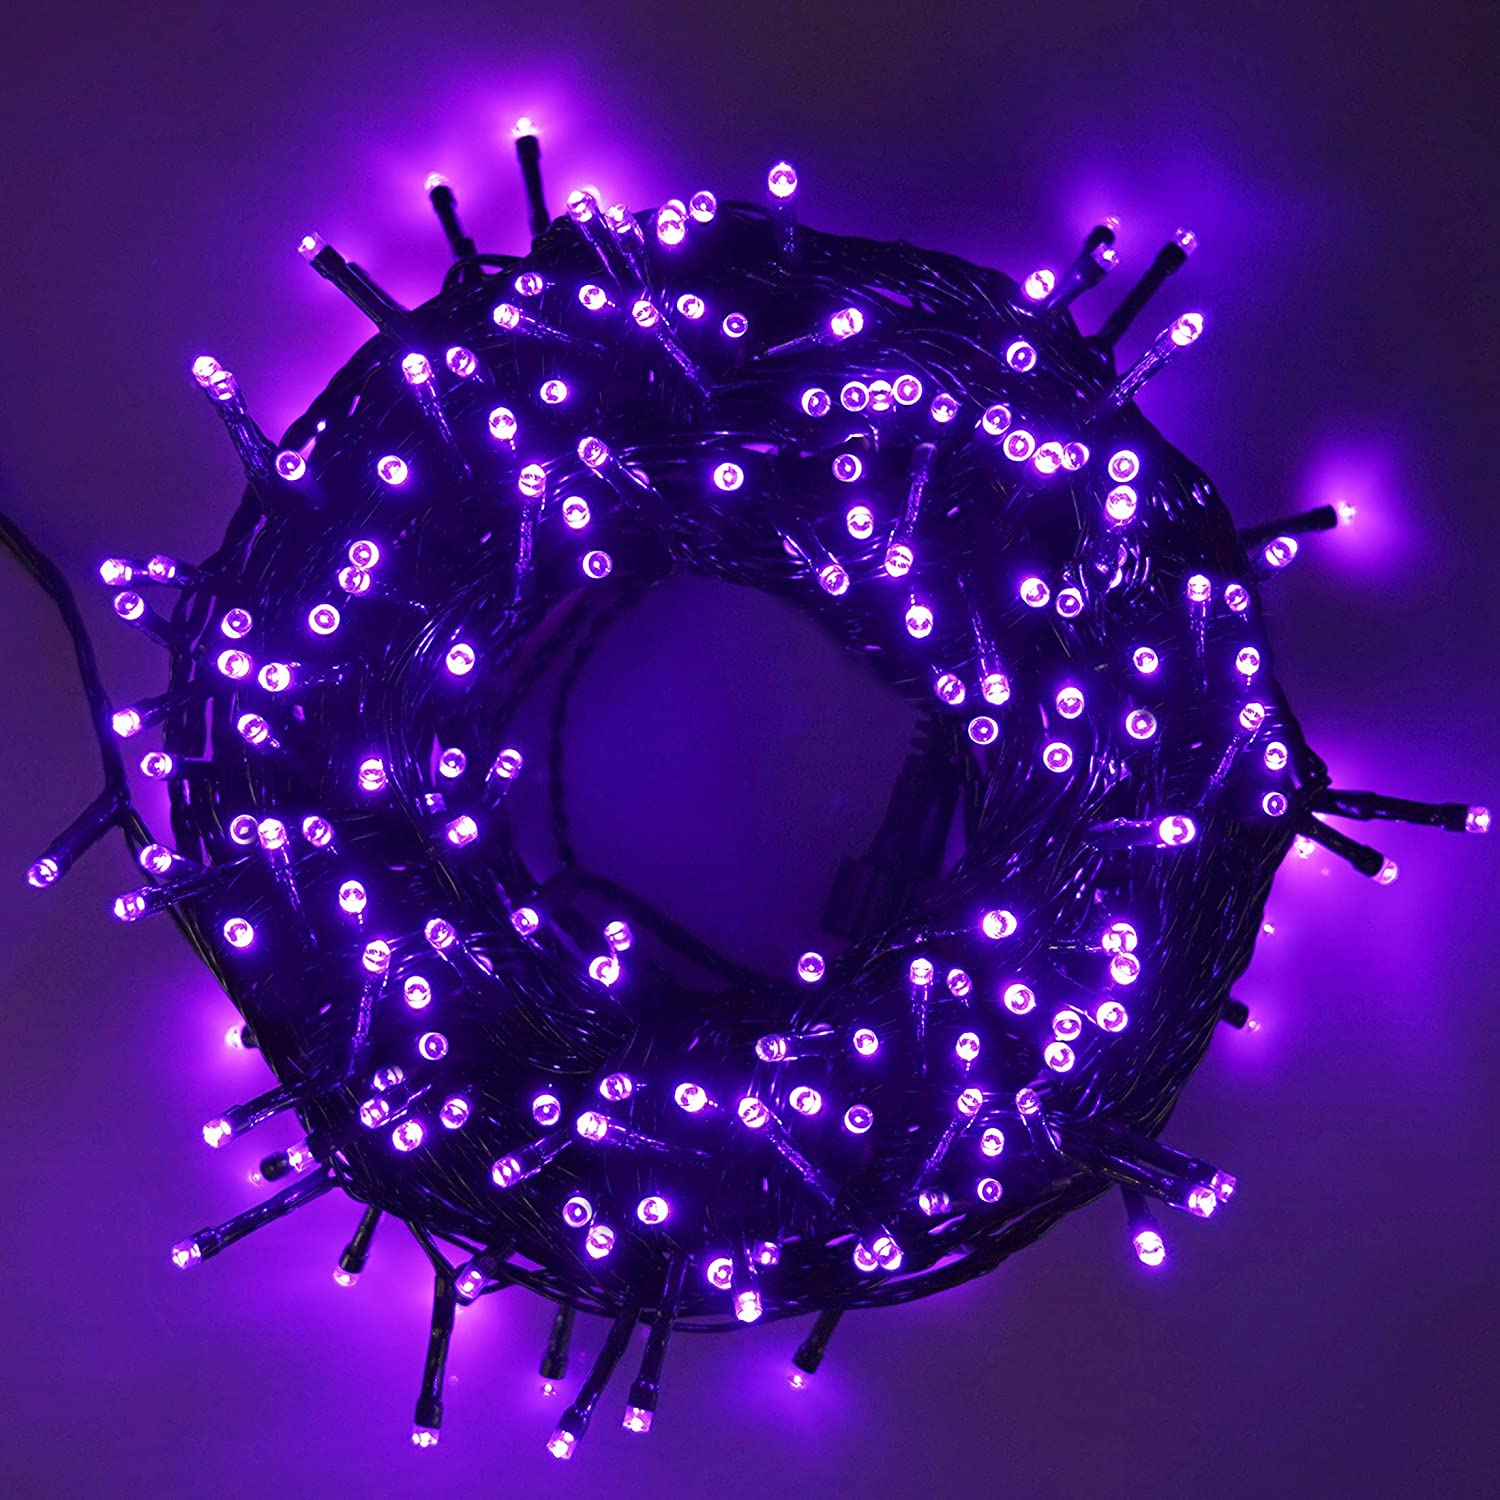 LJLNION 300 LED Indoor Fairy Halloween String Lights, 98.5FT 8 Lighting Modes Light, Plug in String Waterproof Mini Lights for Outdoor Holiday Christmas Wedding Party Bedroom Decorations (Purple)